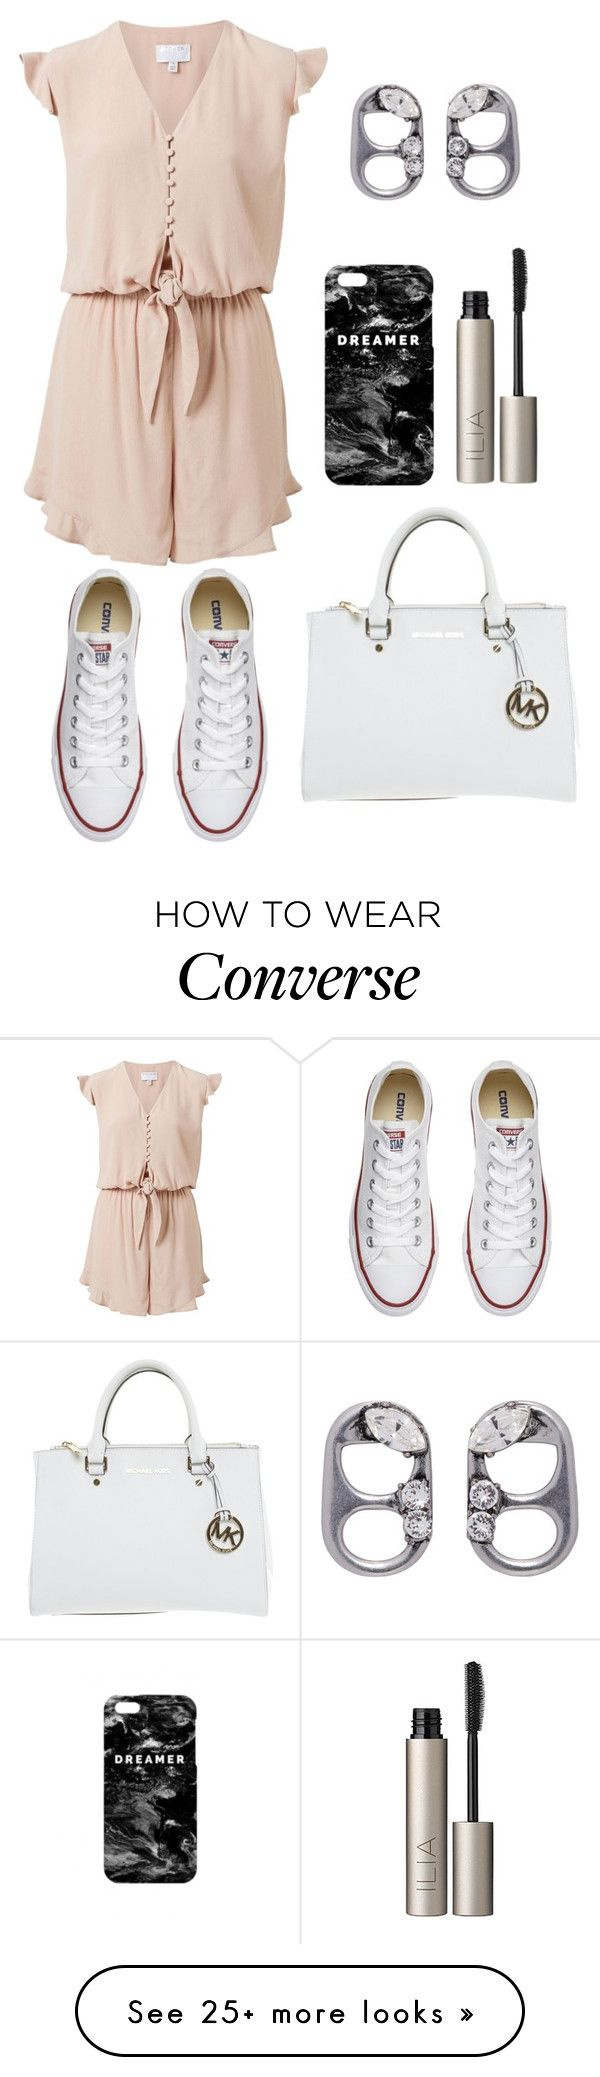 """""""Untitled #111"""" by rozlynjanine on Polyvore featuring Witchery, Converse, Marc Jacobs, Michael Kors, Mr. Gugu & Miss Go and Ilia"""